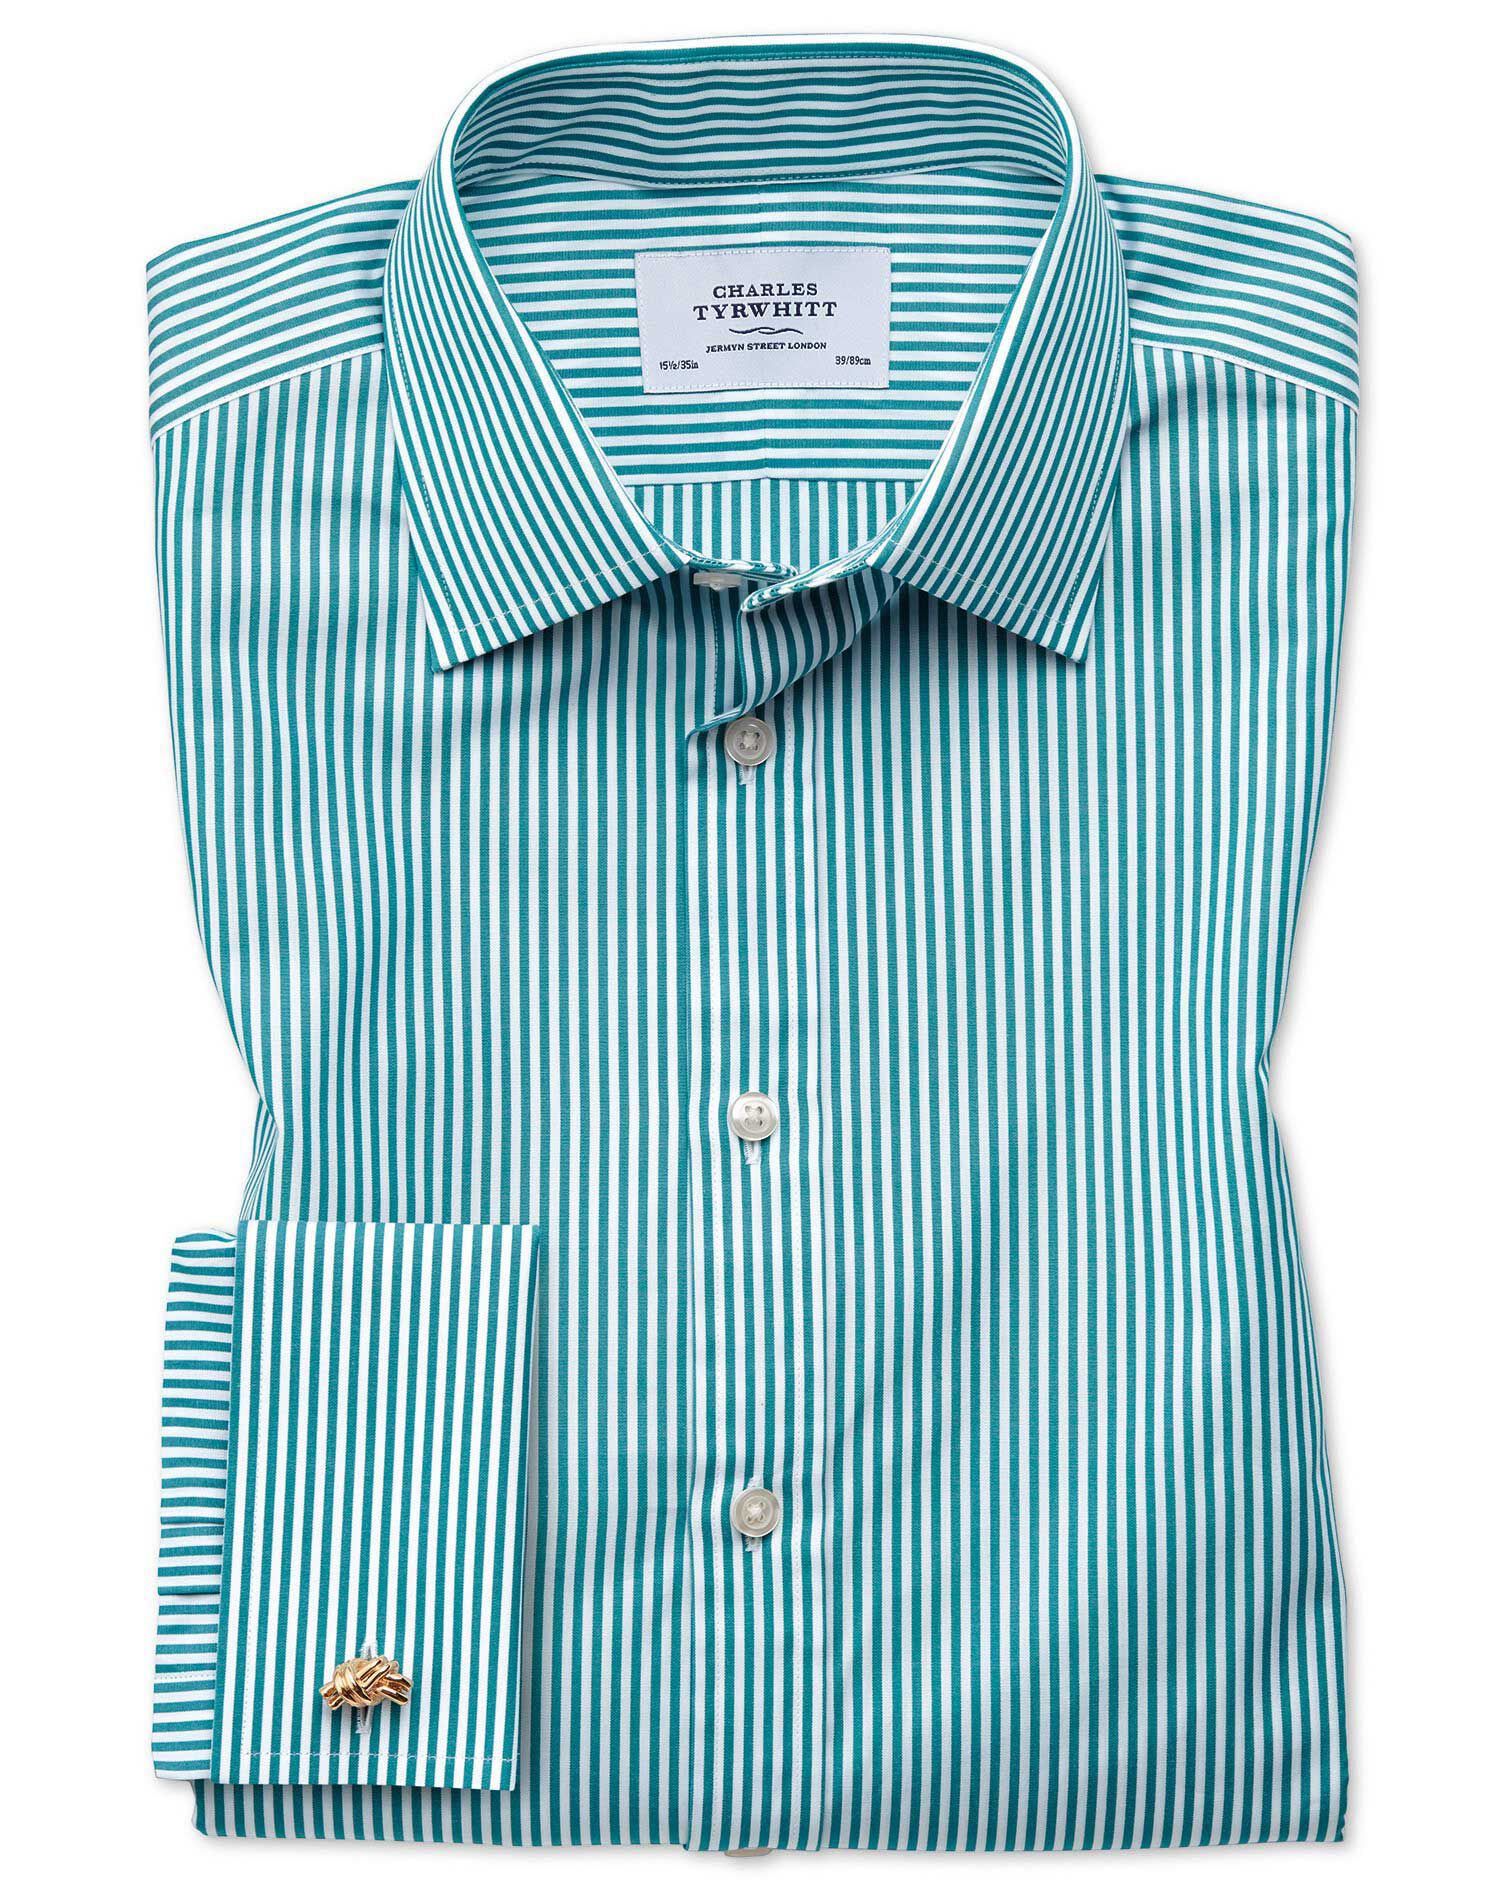 Slim Fit Bengal Stripe Green Cotton Formal Shirt Double Cuff Size 17.5/34 by Charles Tyrwhitt